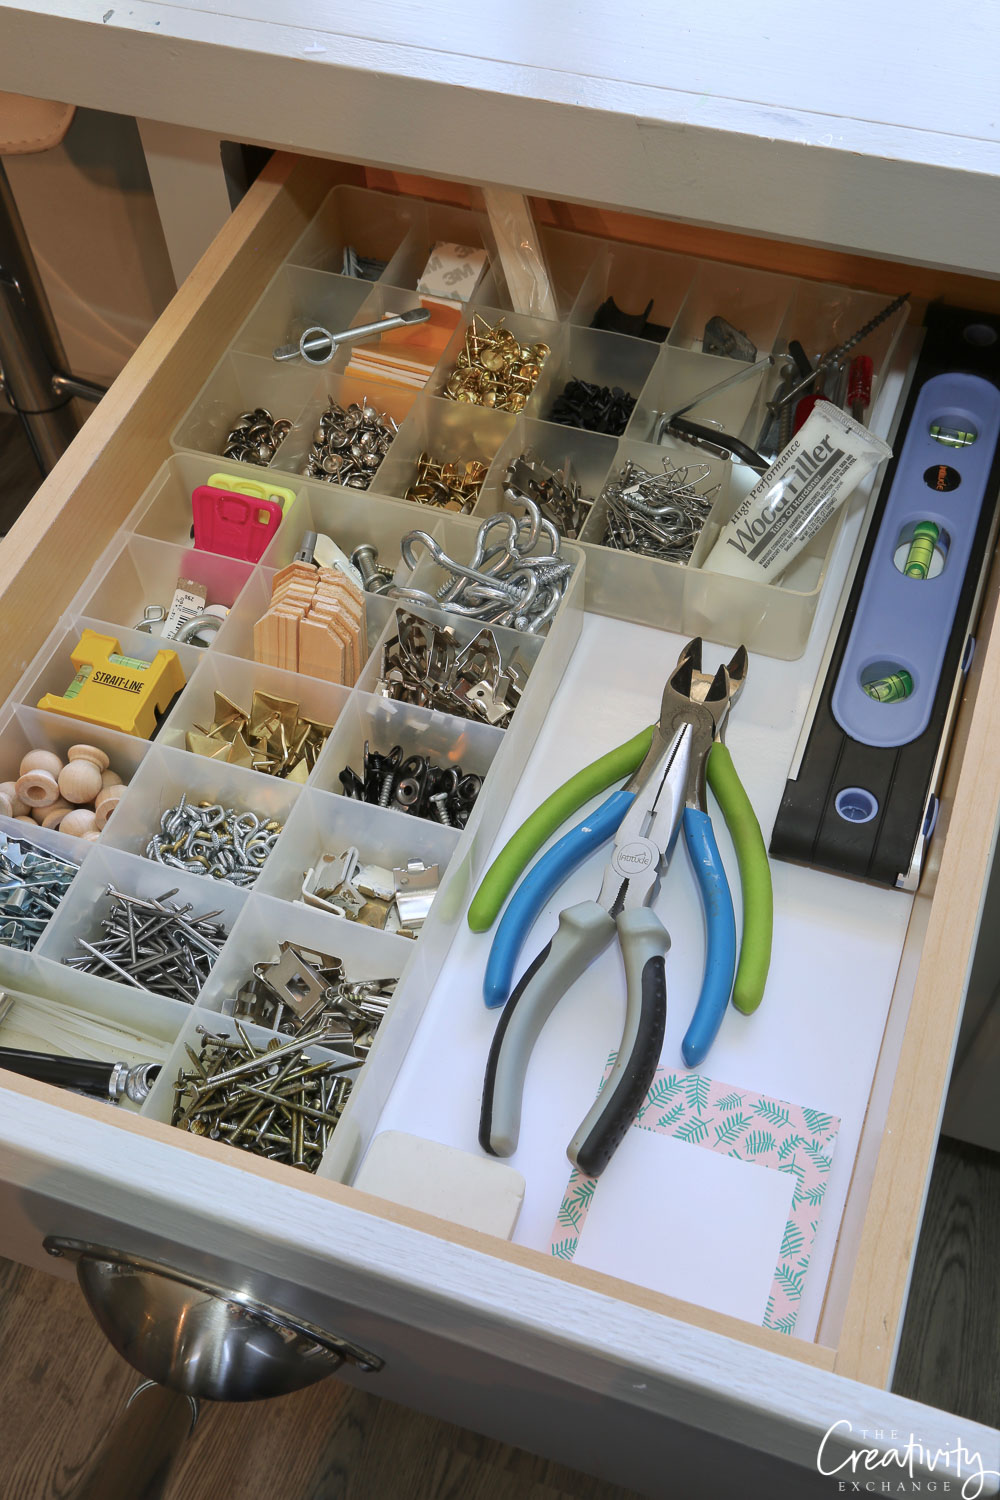 Hardware drawer using bead storage containers